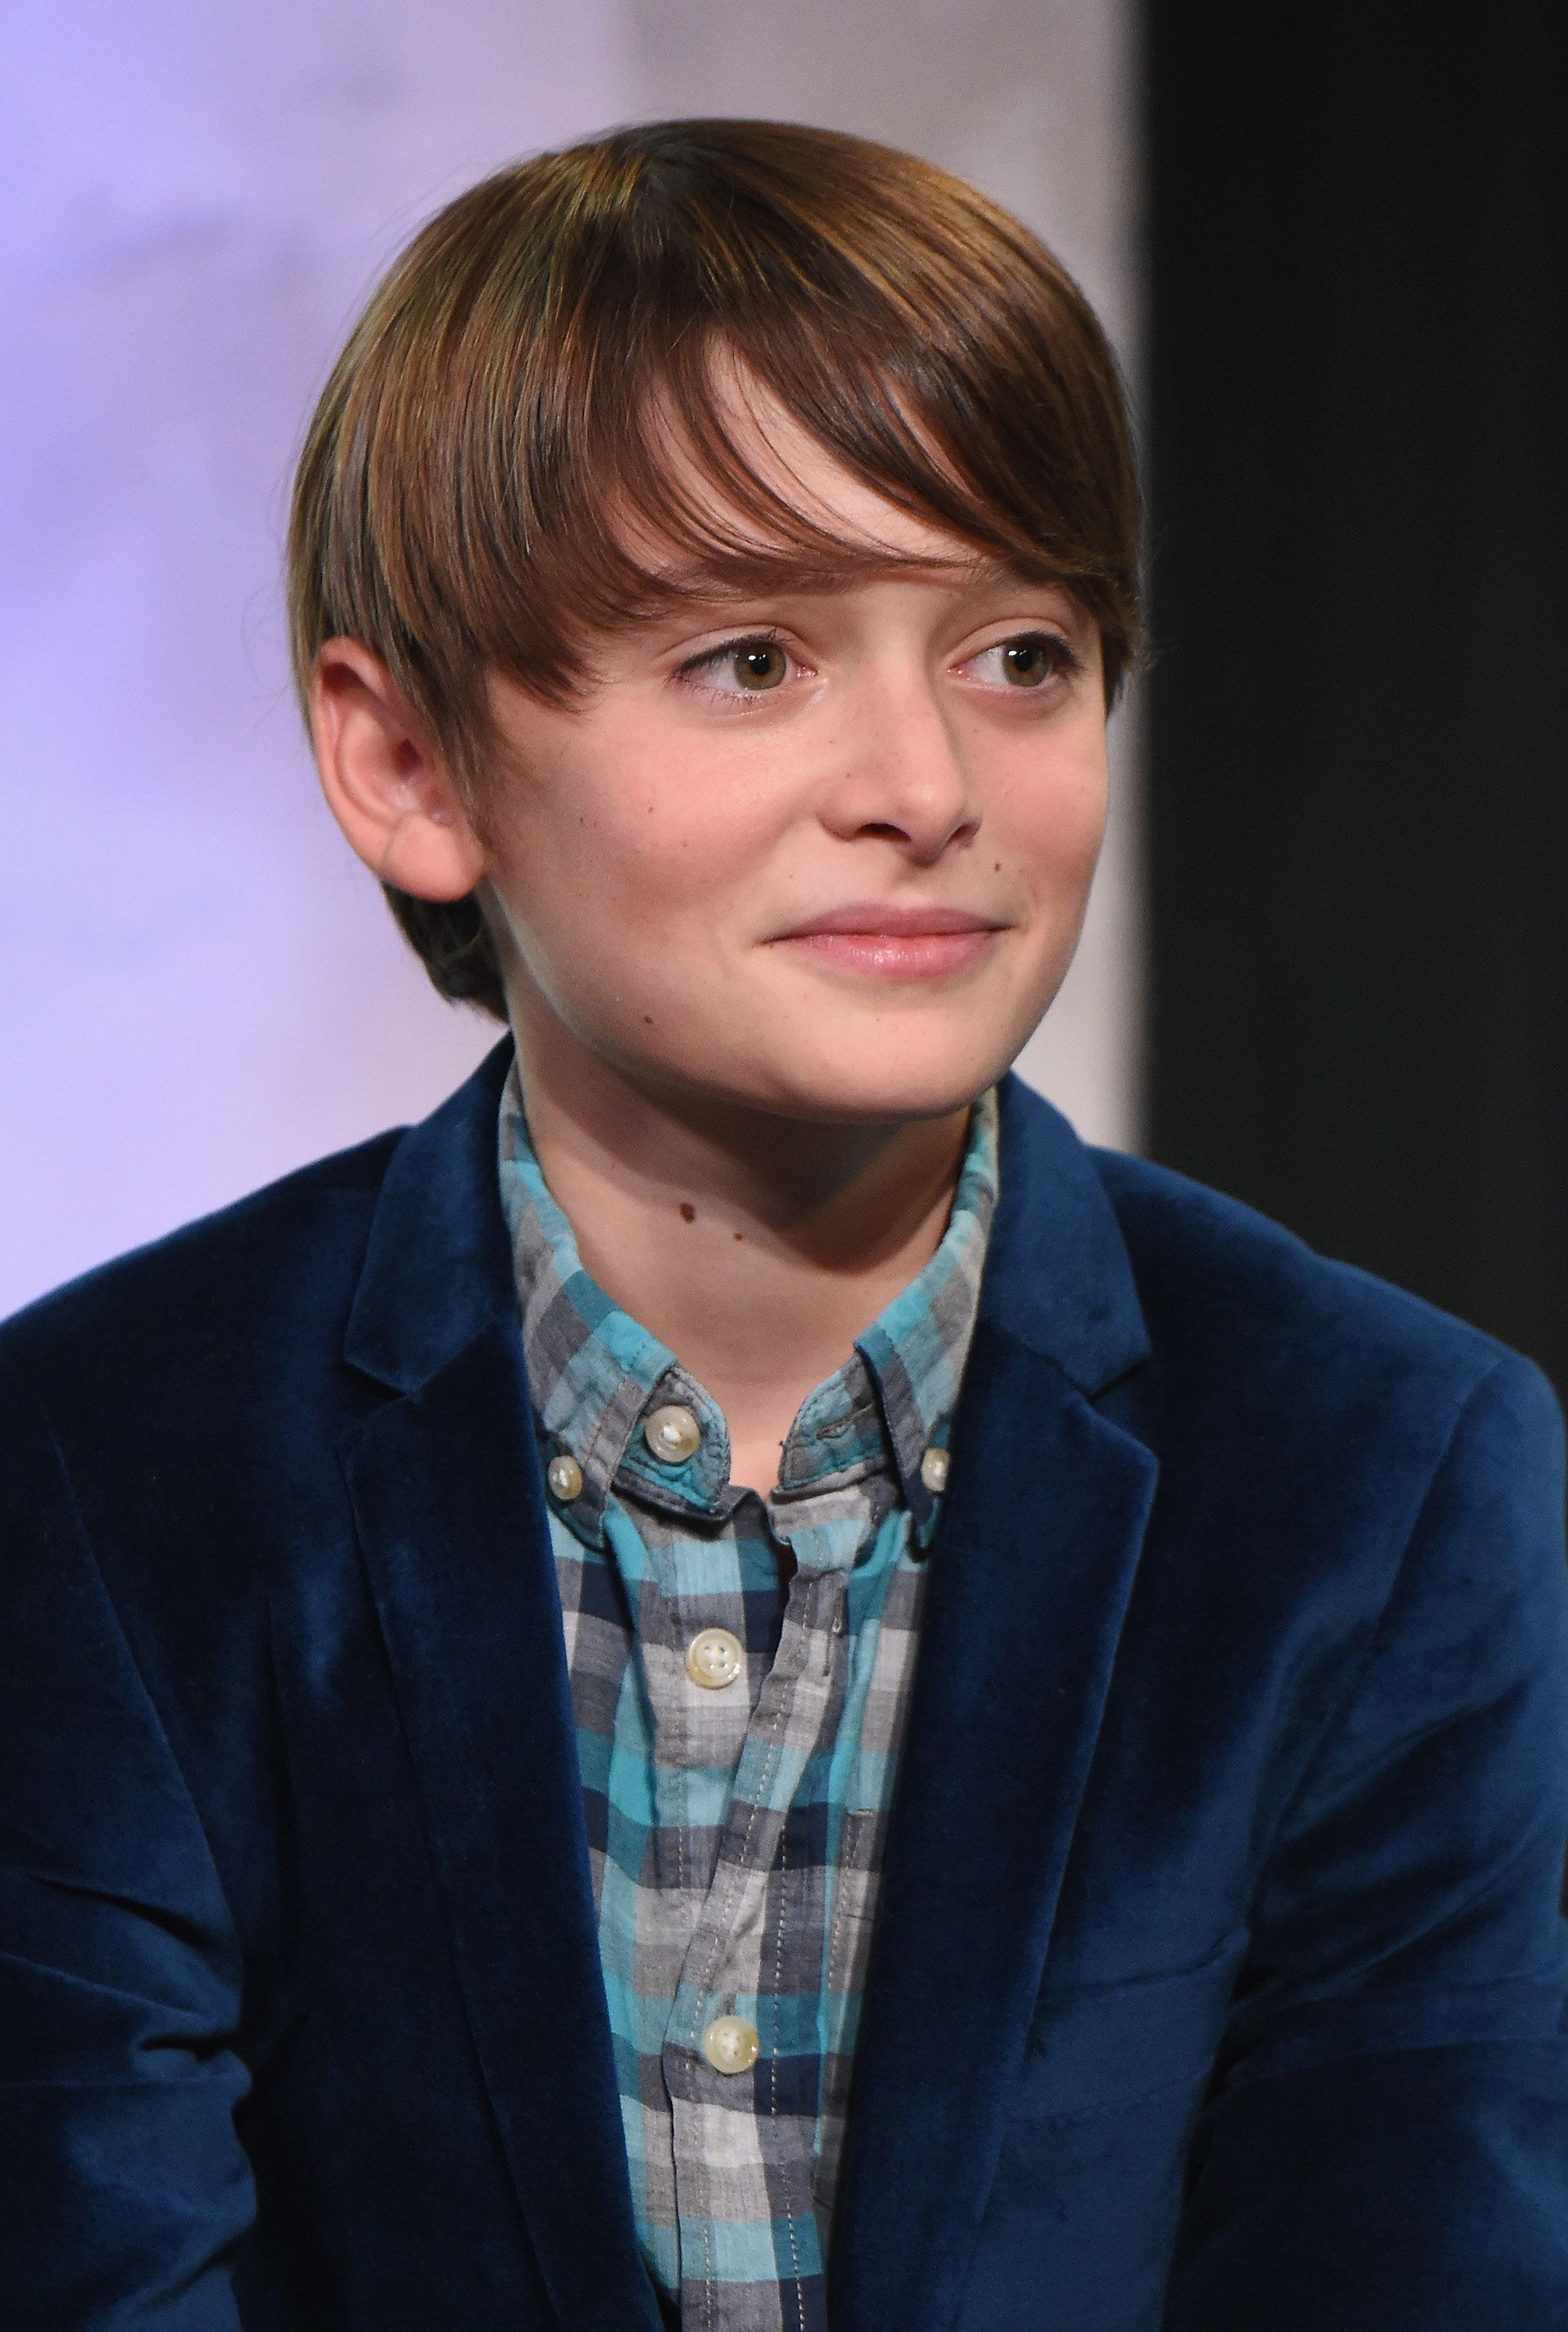 NEW YORK, NY - AUGUST 31:  Actor Noah Schnapp of 'Stranger Things' attends the BUILD Series at AOL HQ on August 31, 2016 in New York City.  (Photo by Michael Loccisano/Getty Images)